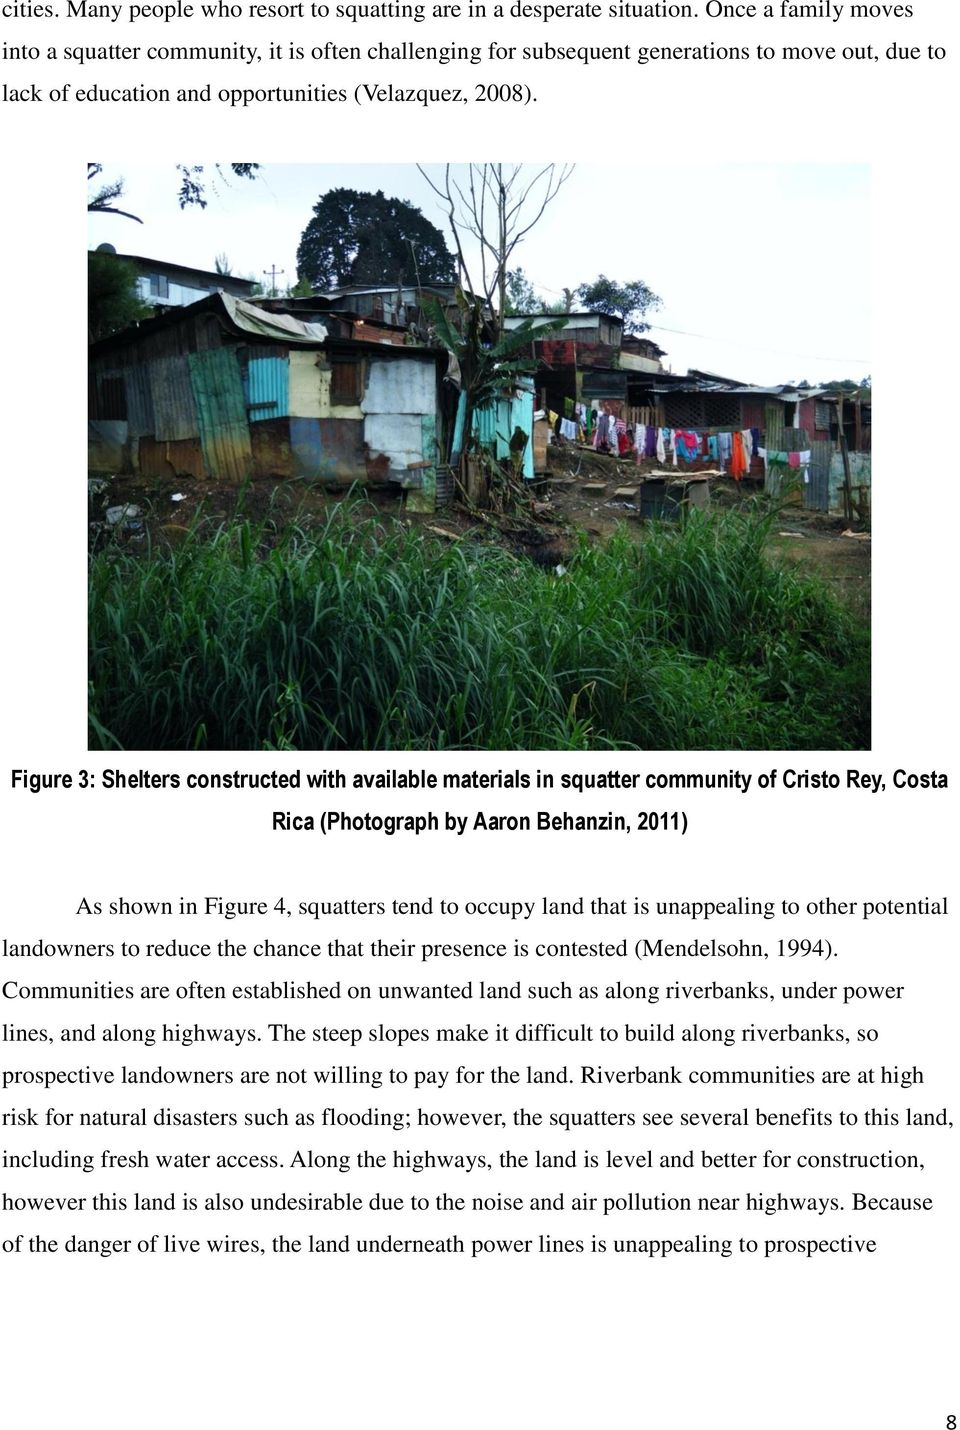 Figure 3: Shelters constructed with available materials in squatter community of Cristo Rey, Costa Rica (Photograph by Aaron Behanzin, 2011) As shown in Figure 4, squatters tend to occupy land that